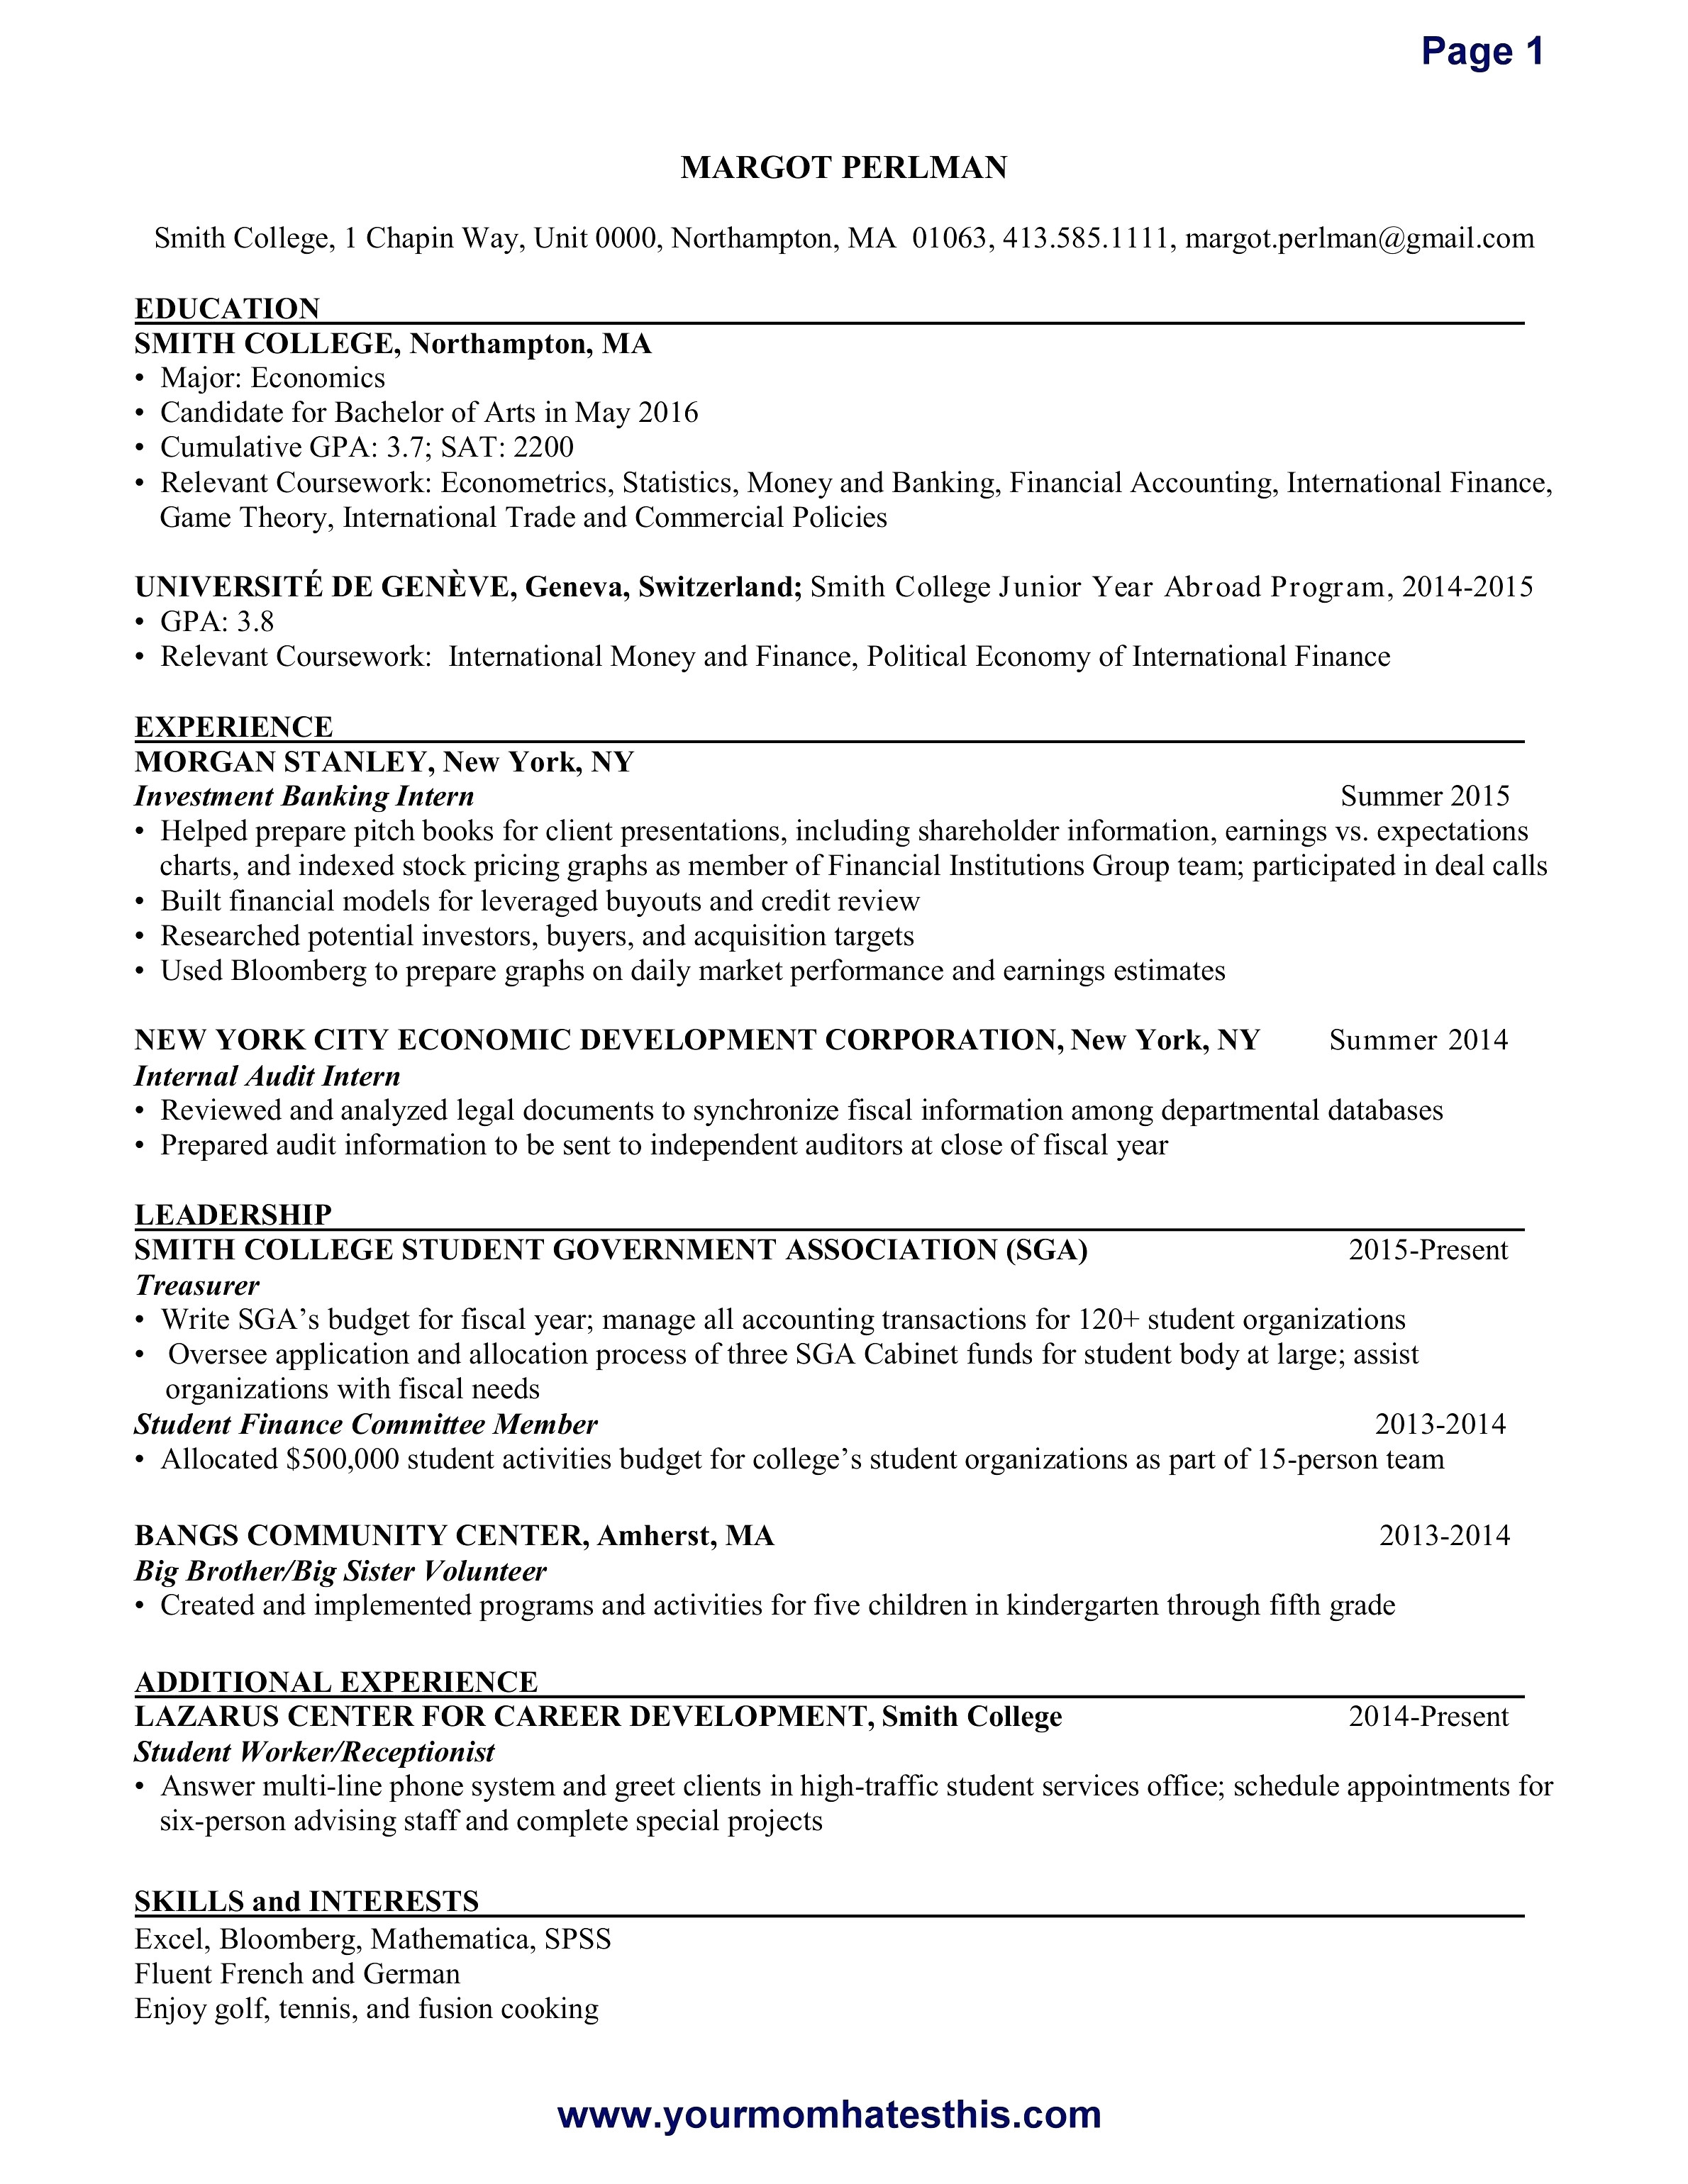 free internship resume template Collection-Best Pr Resume Template Elegant Dictionary Template 0d Archives Free Free Resume Templates Luxury 17-r